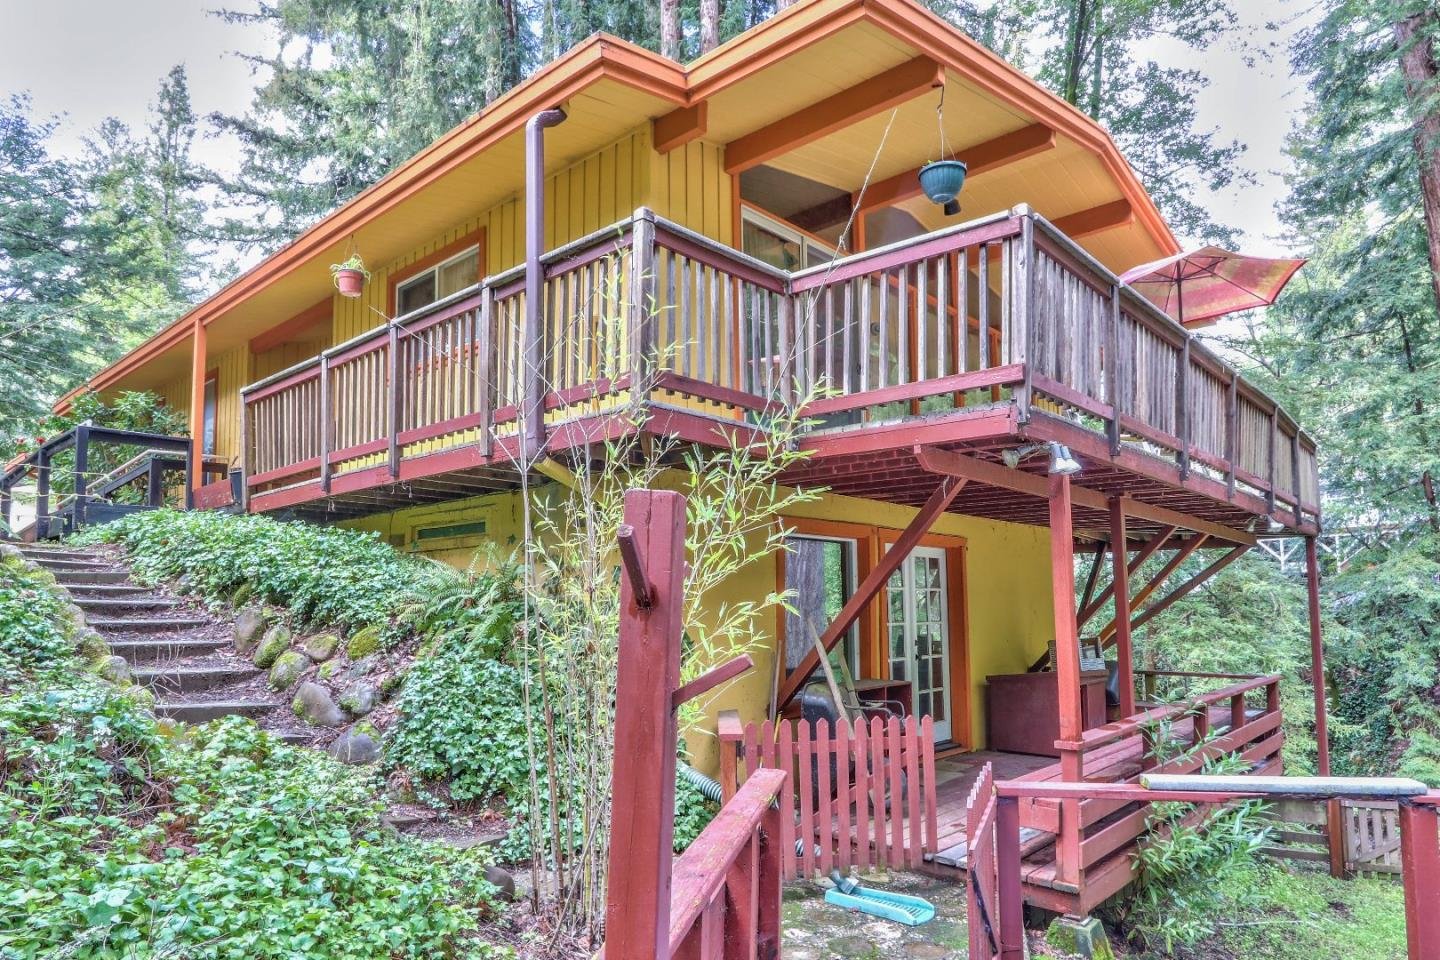 Enjoy the beautiful views that this property has to offer. Features, two stories and wrap around decks just off the living room. High ceilings, laminate floors throughout the property and kitchen has tile counter tops. Relax on the deck and view the creek in the back of the property. Perfect place for someone who is looking to be outside the city, but conveniently located near Boulder Creek.